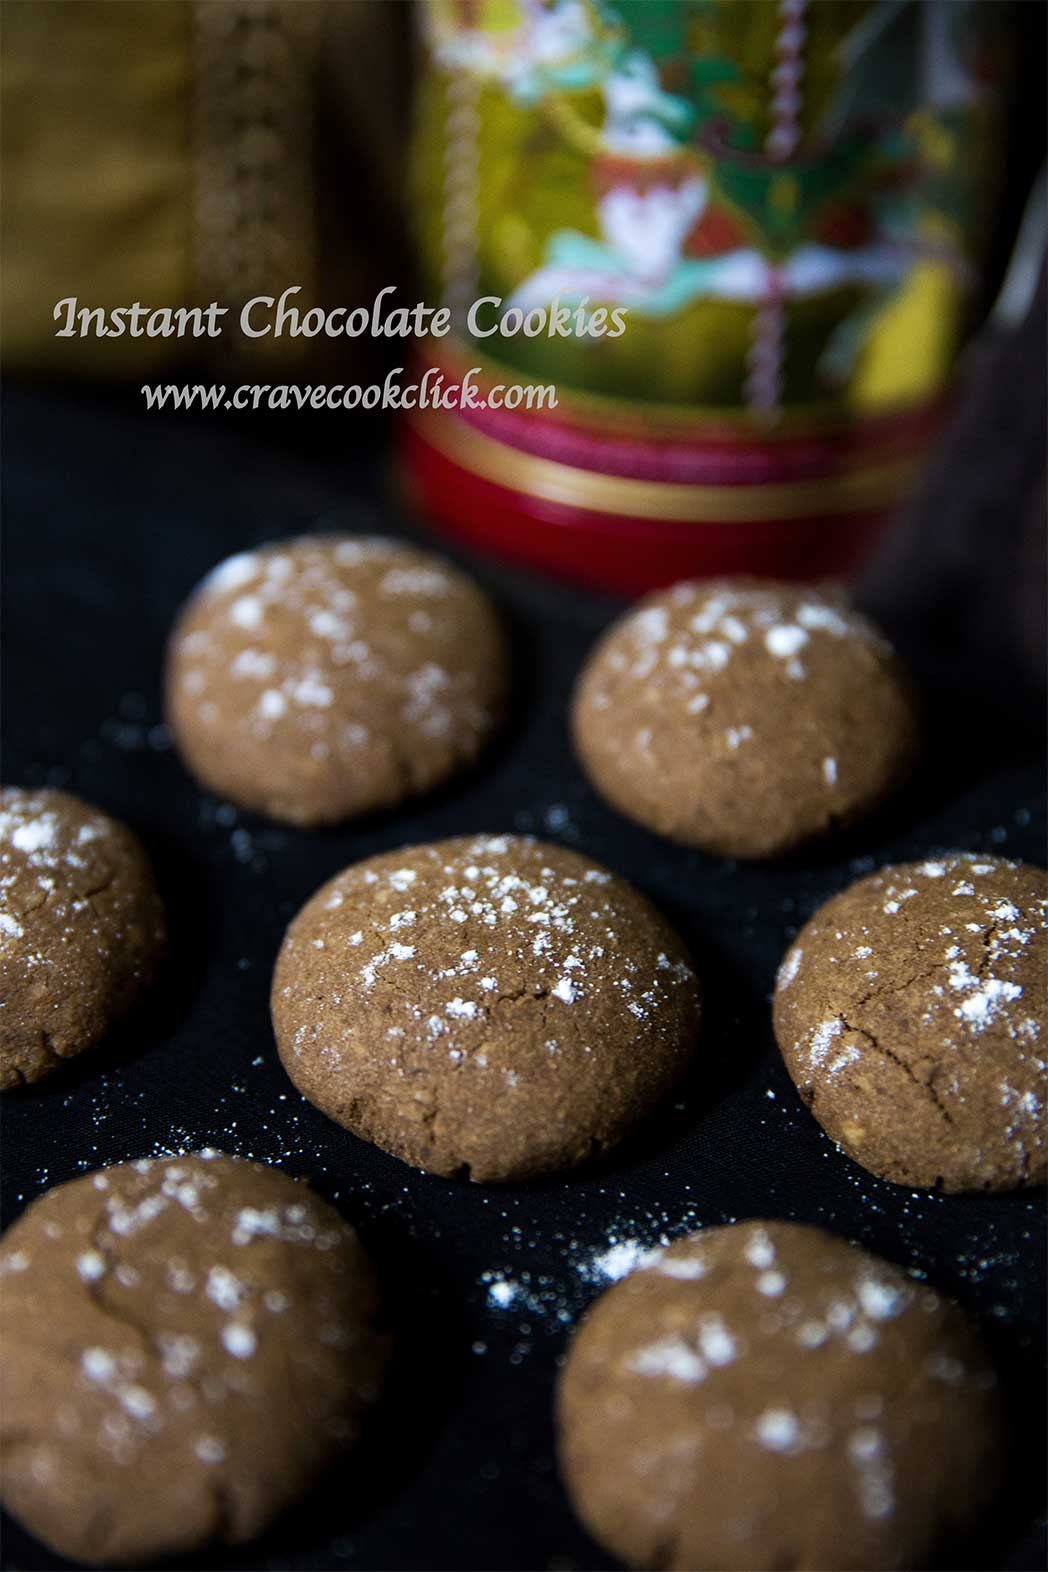 Instant Chocolate Cookies Recipe